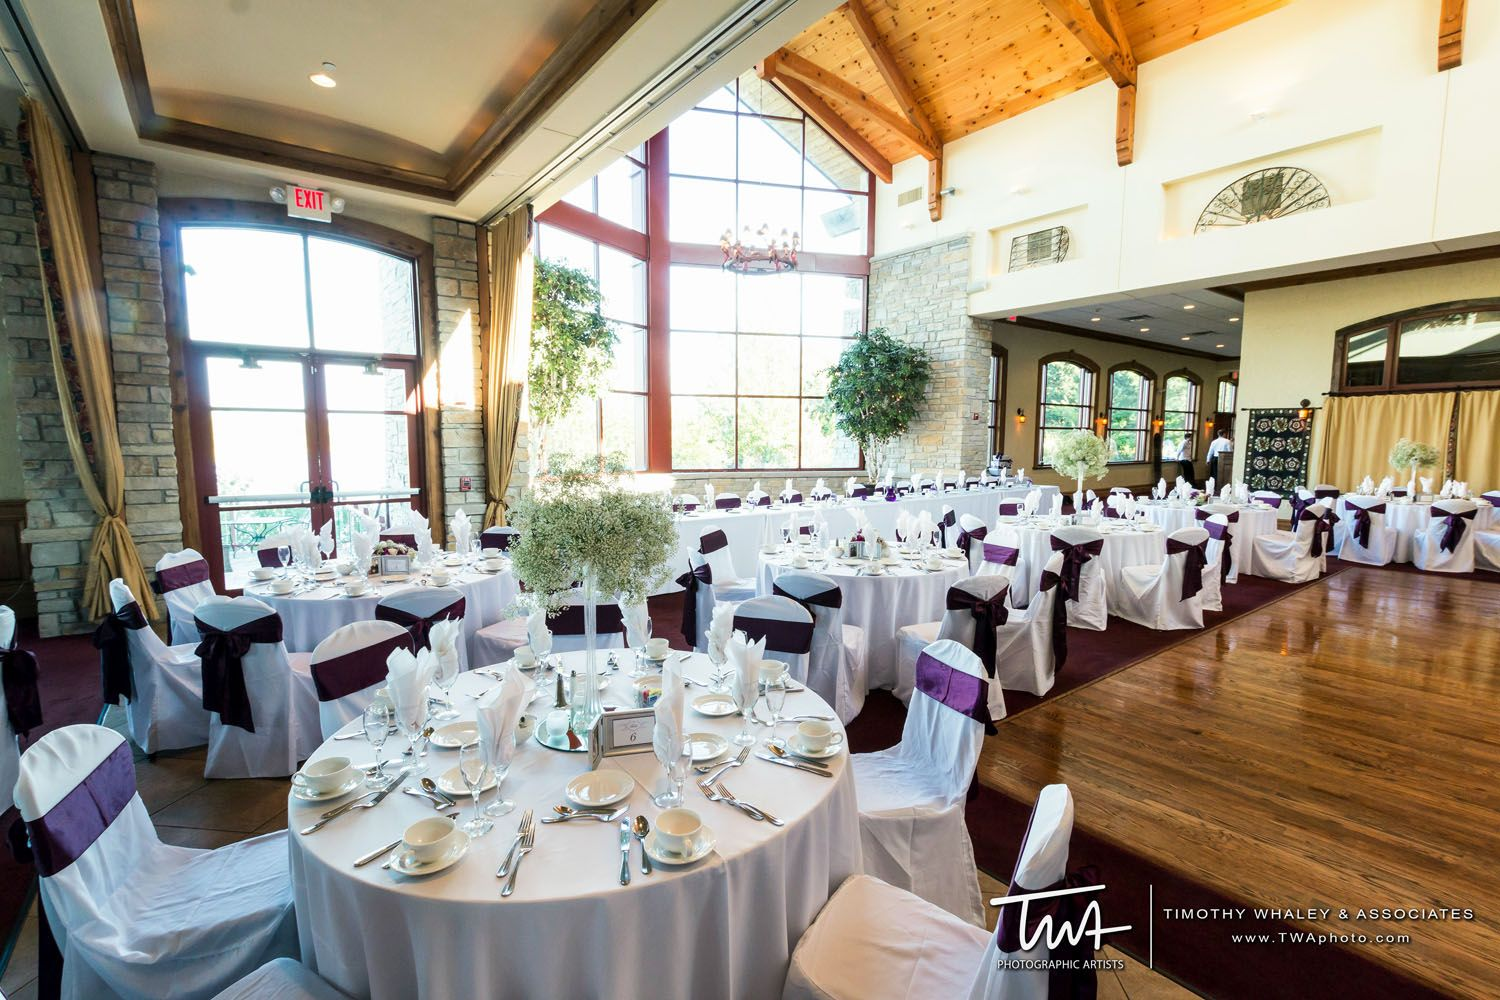 Twa Weddings At The Onion Pub And Brewery Click Picture To Enter Our Wedding